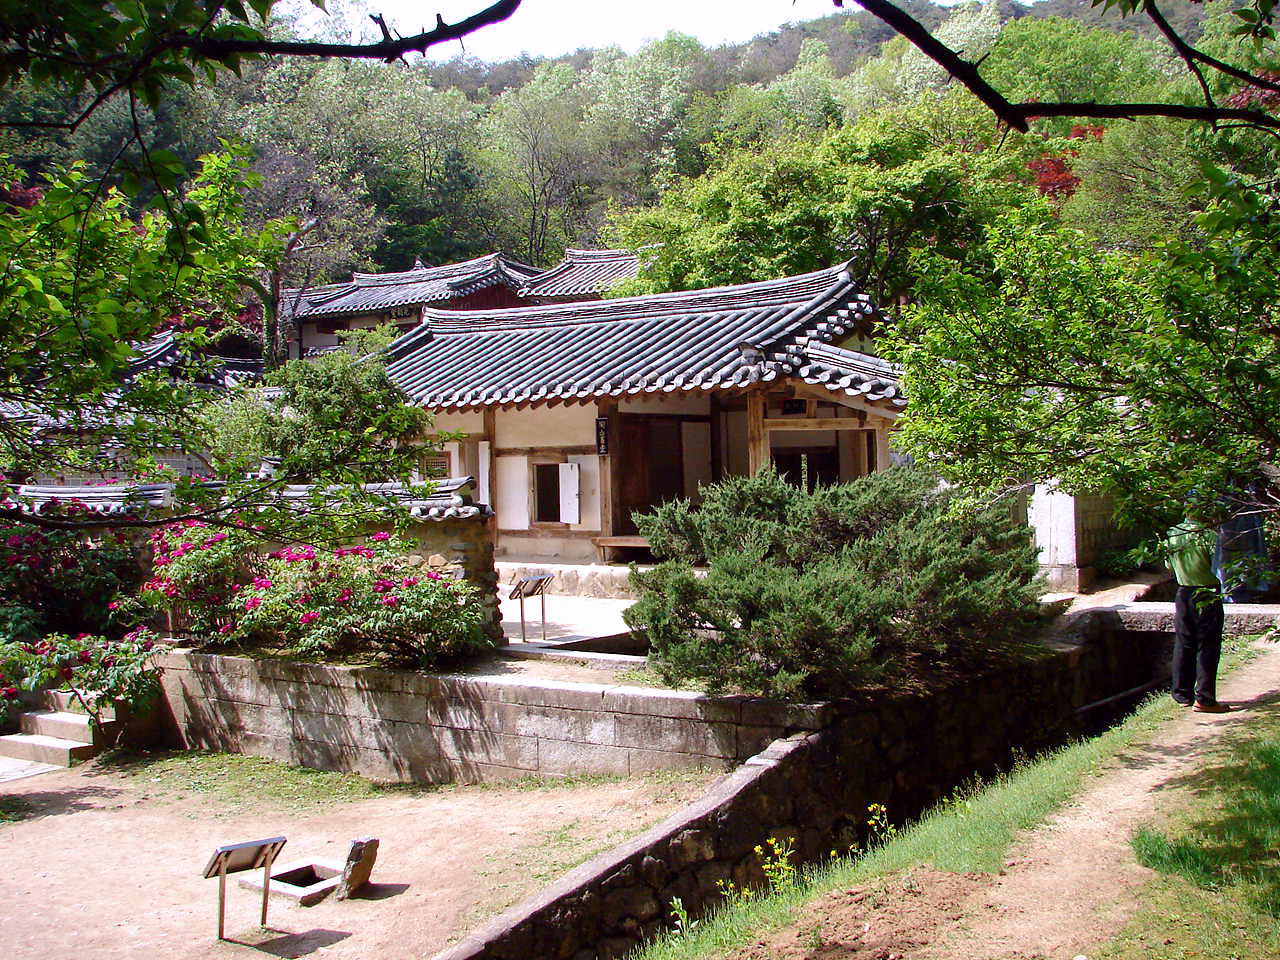 The Dosan Seowon, or Cofucian academy, was established in 1574 in Andong, South Korea, in memory of Confucian scholar Yi Hwang, by some of his disciples and other Confucian authorities. (Photo by Steve46814 via Wikimedia Commons)